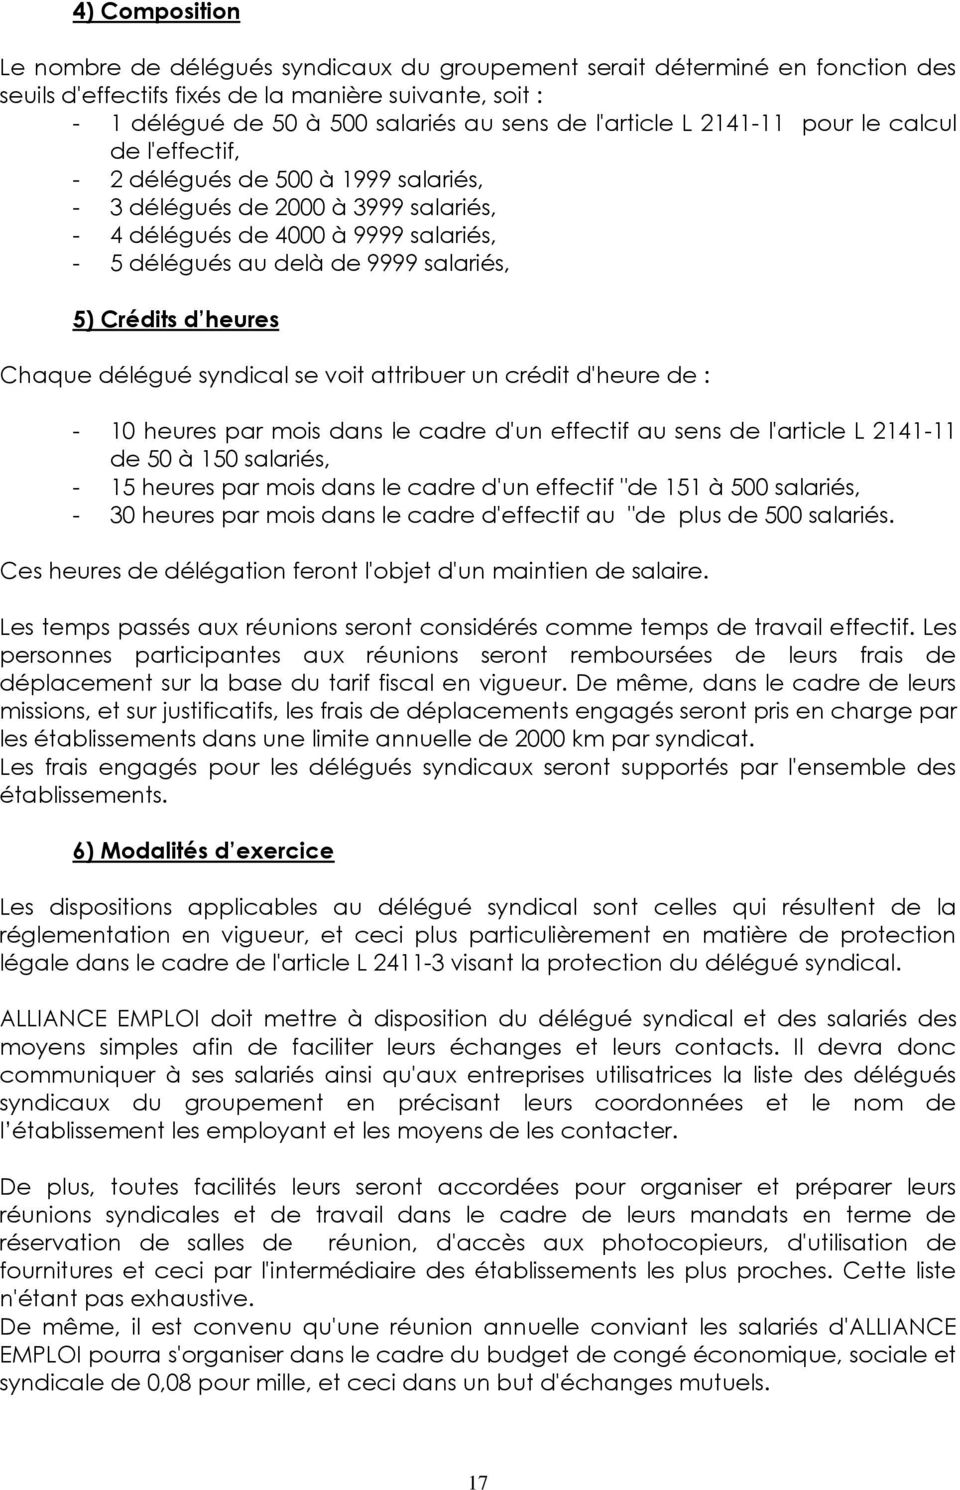 alliance emploi valenciennes